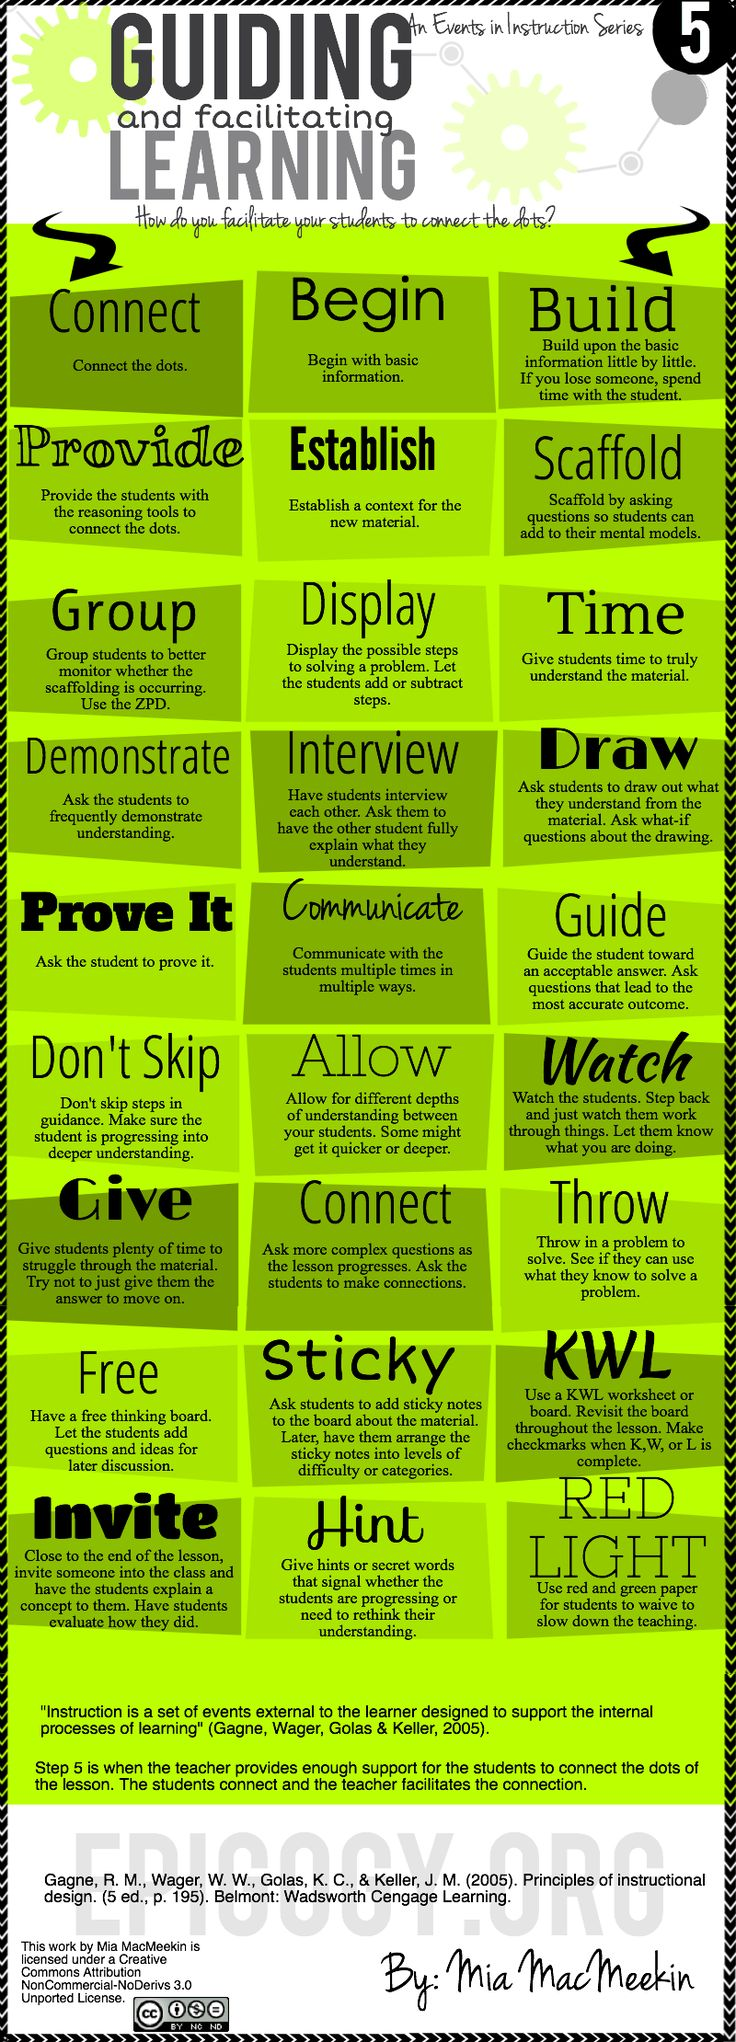 guided reading chart - great visual For more pins like this visit: http://pinterest.com/kindkids/loving-language-arts-charlotte-s-clips/